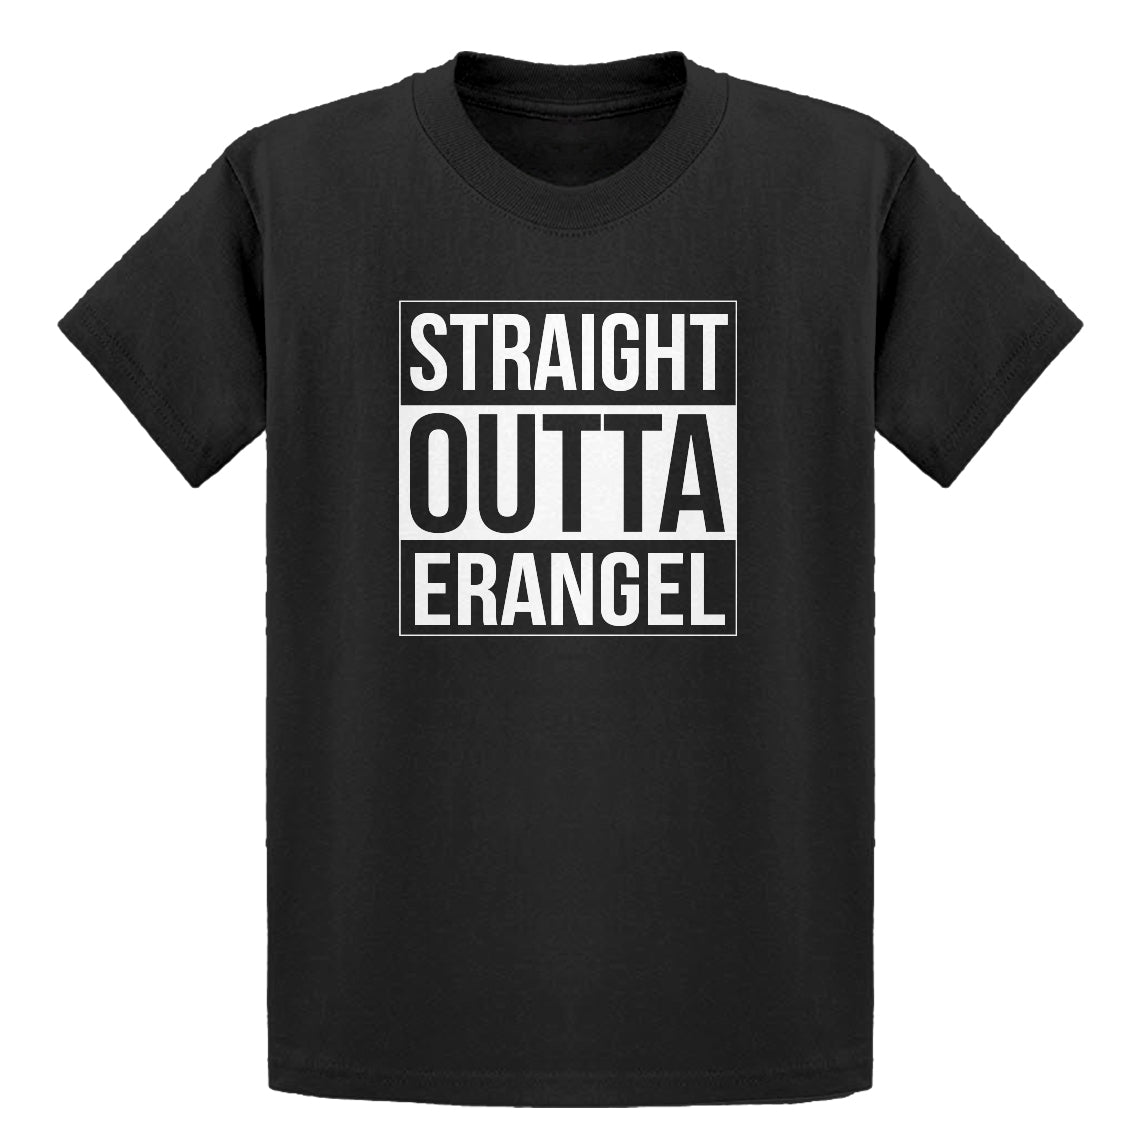 Youth Straight Outta Erangel Kids T-shirt